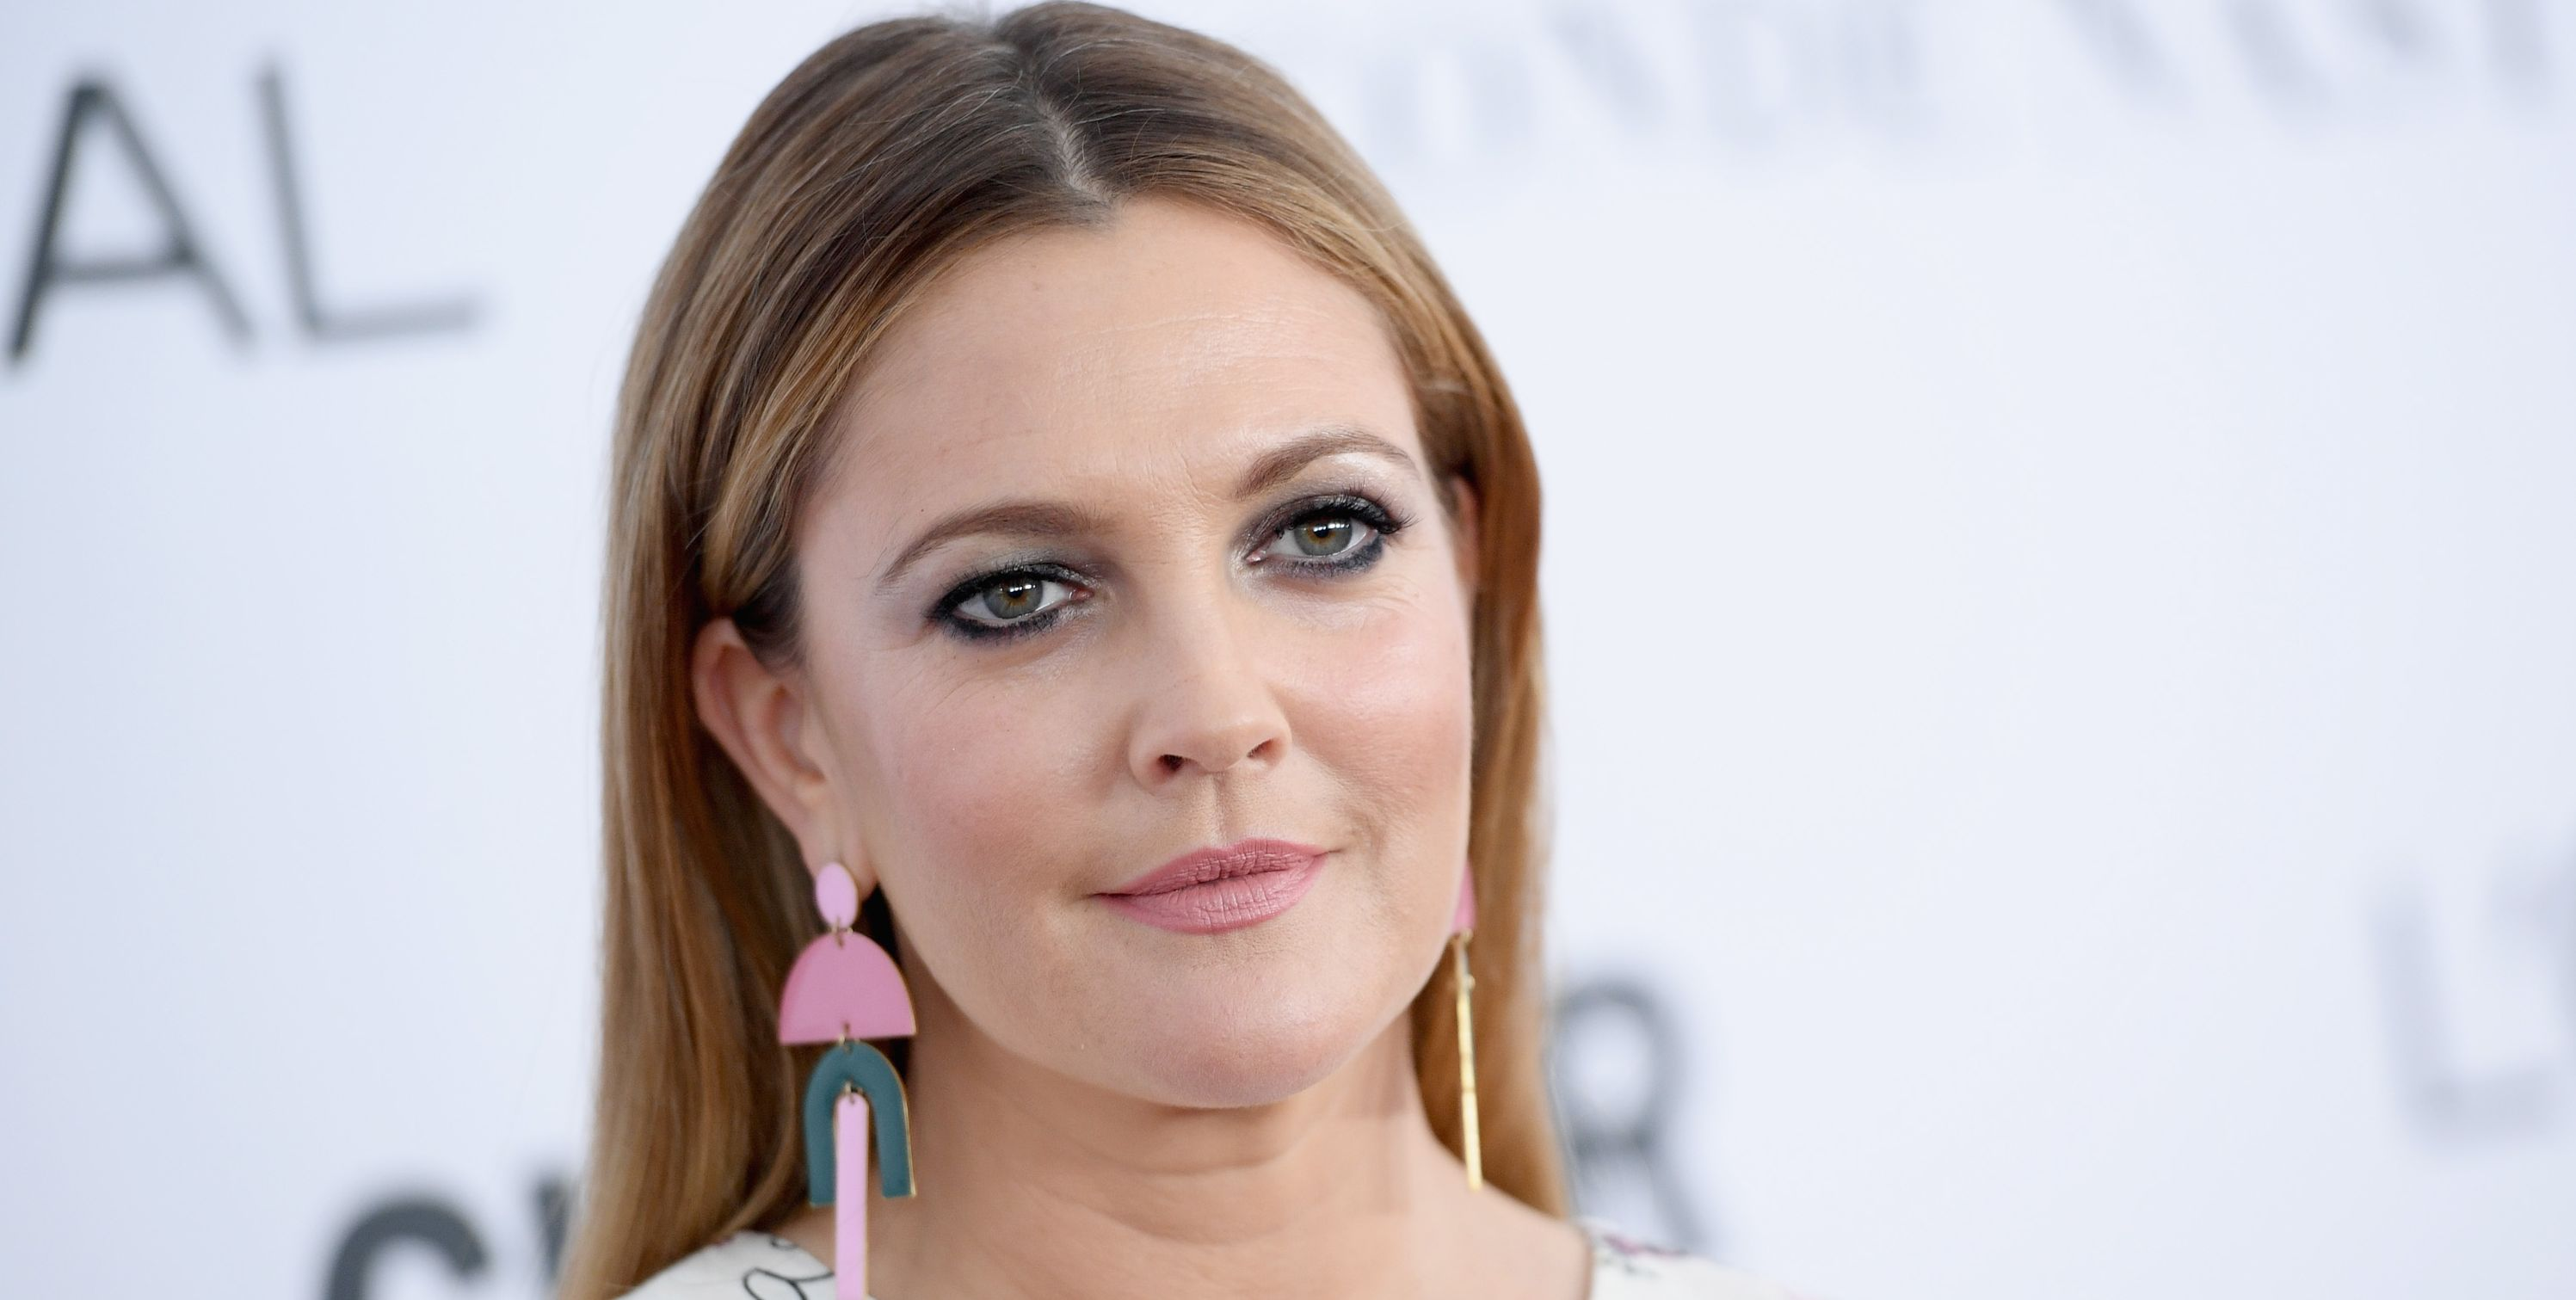 The £16 Acne-clearing Gel That Drew Barrymore Uses for Breakouts